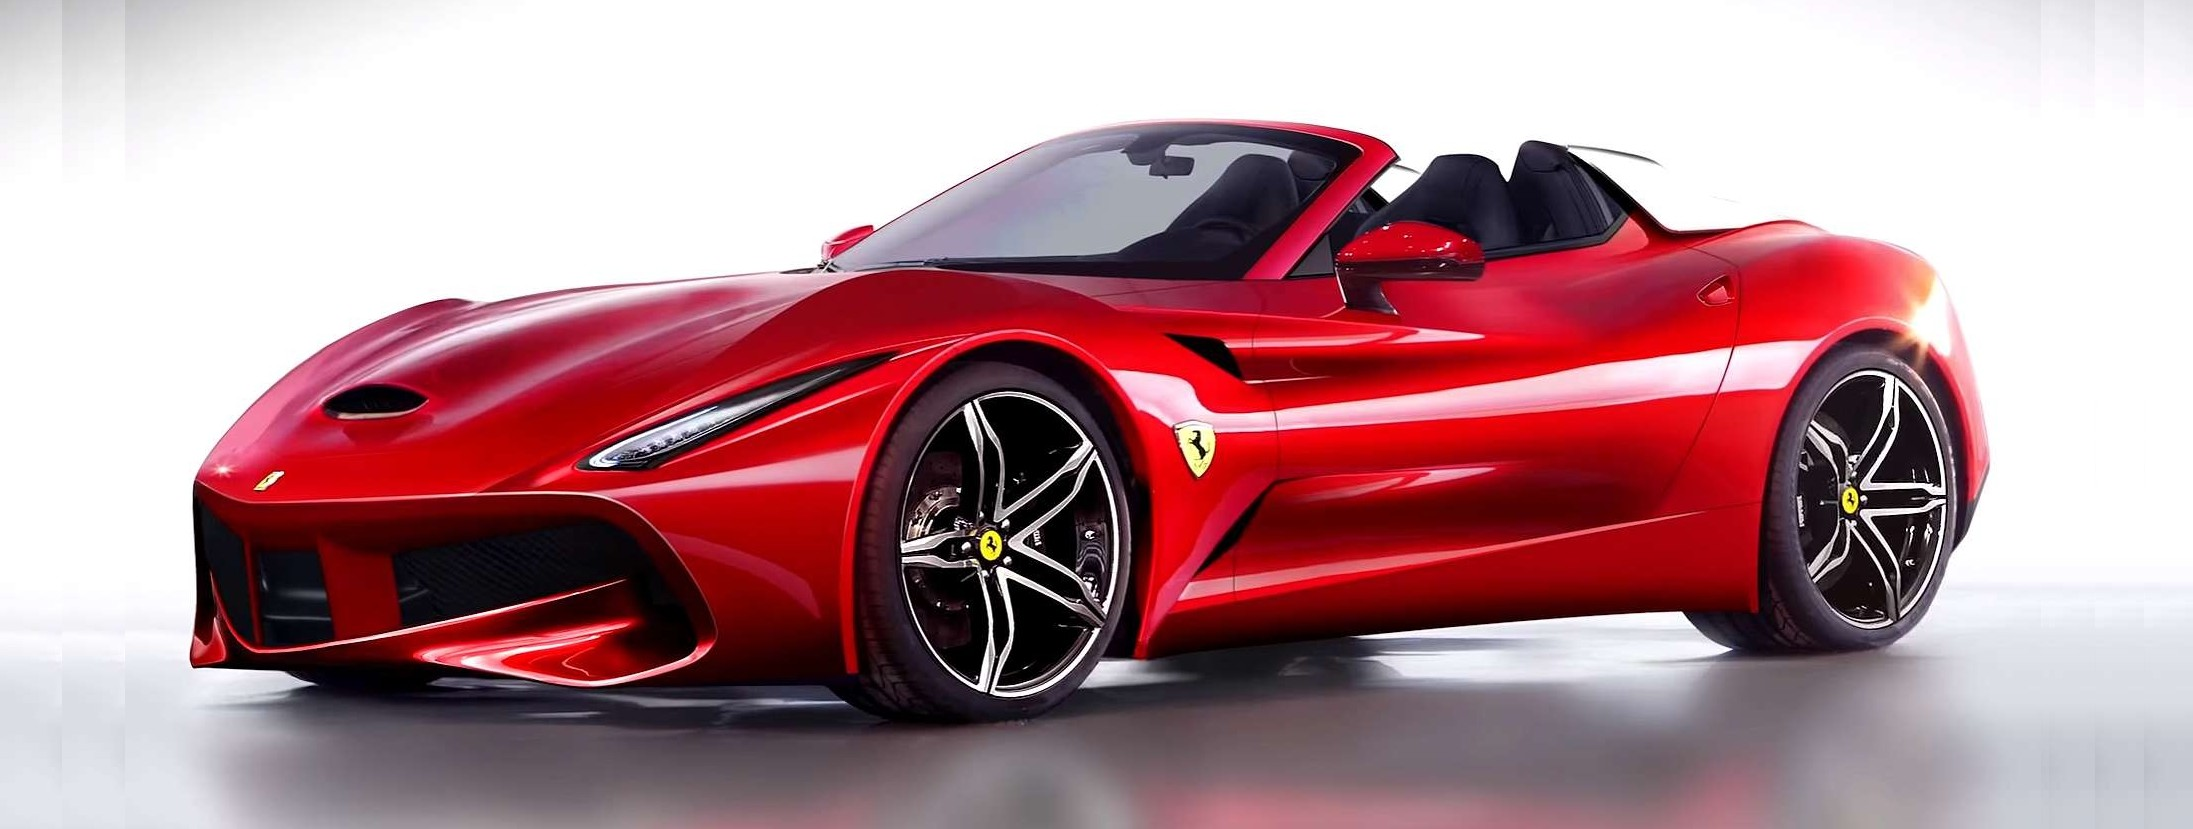 2019 Ferrari California The New Generation Of Ferrari